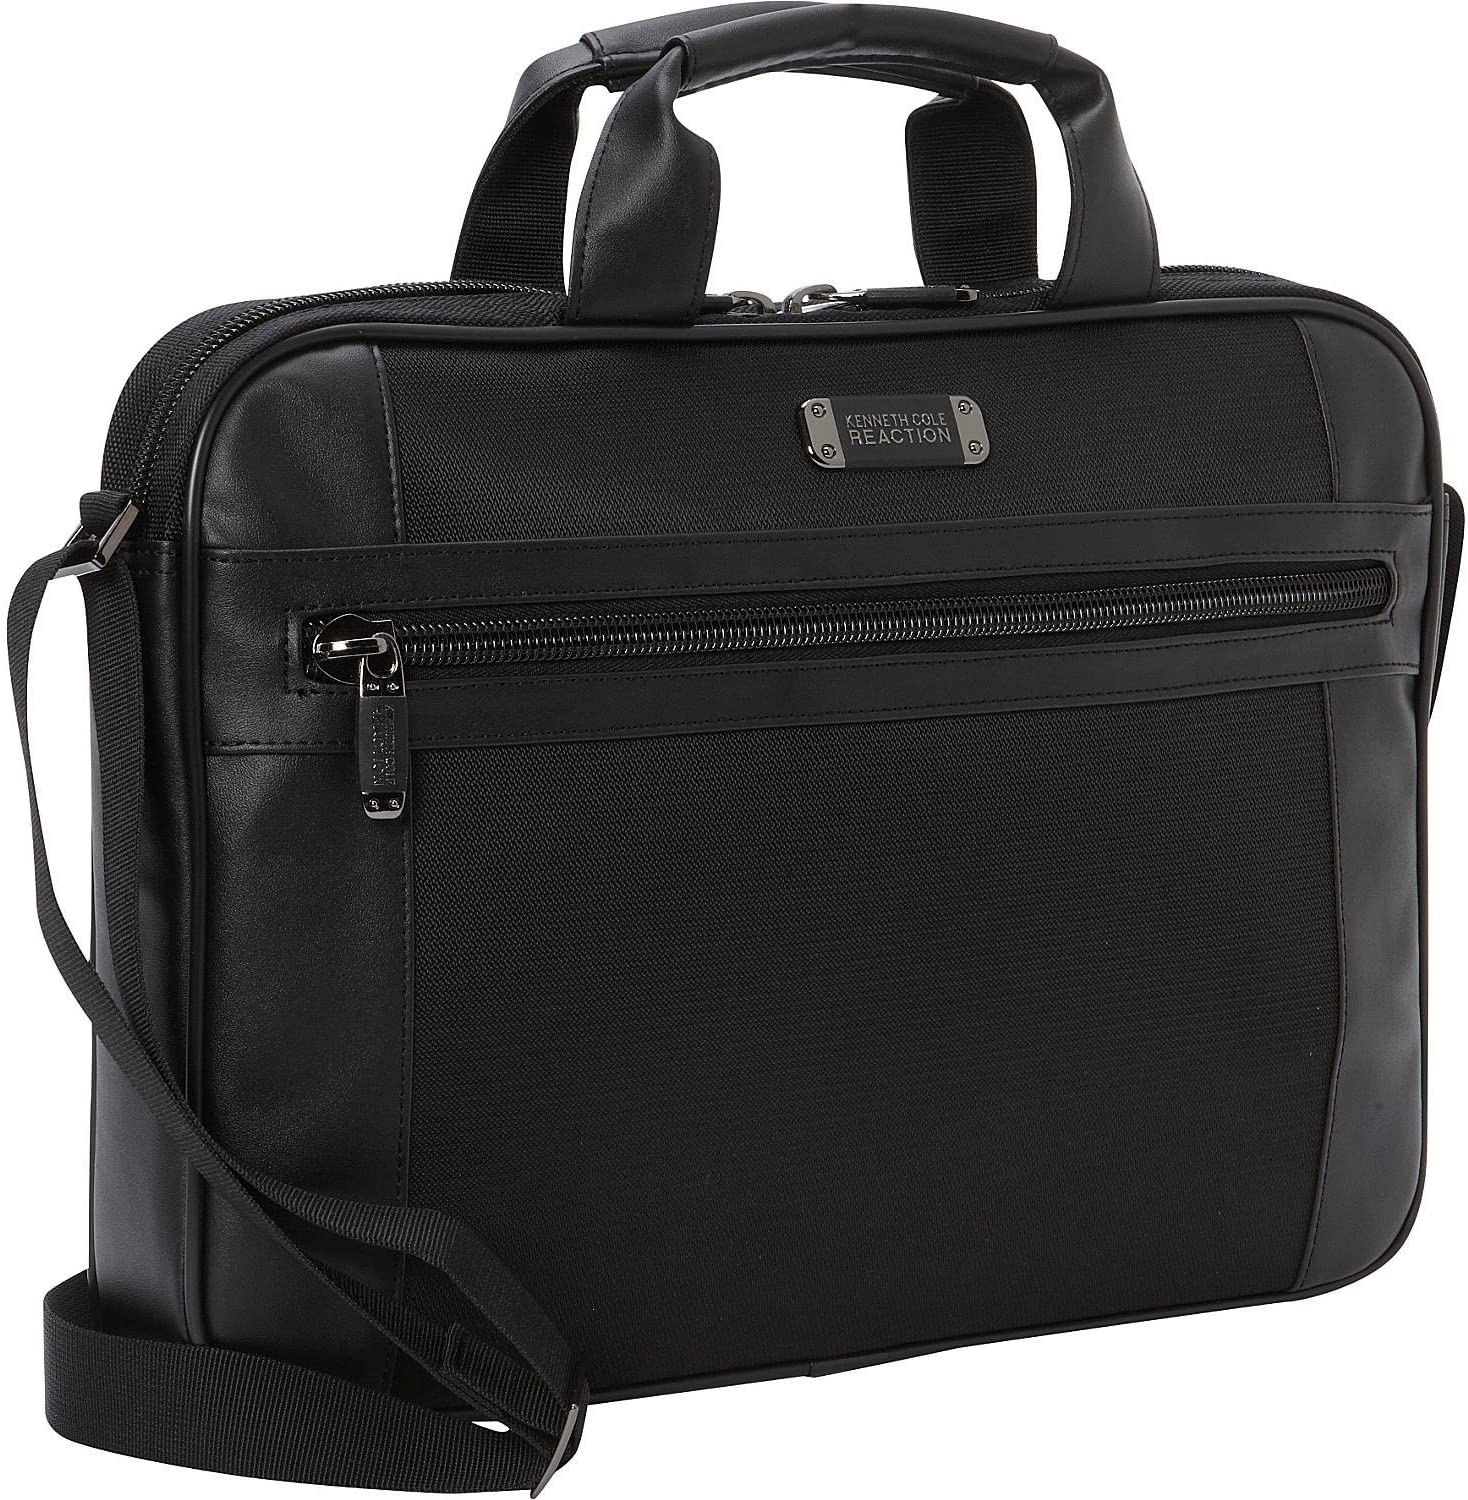 "Kenneth Cole Reaction 15.6"" Slim Top Zip Laptop Bag, Black One Size"